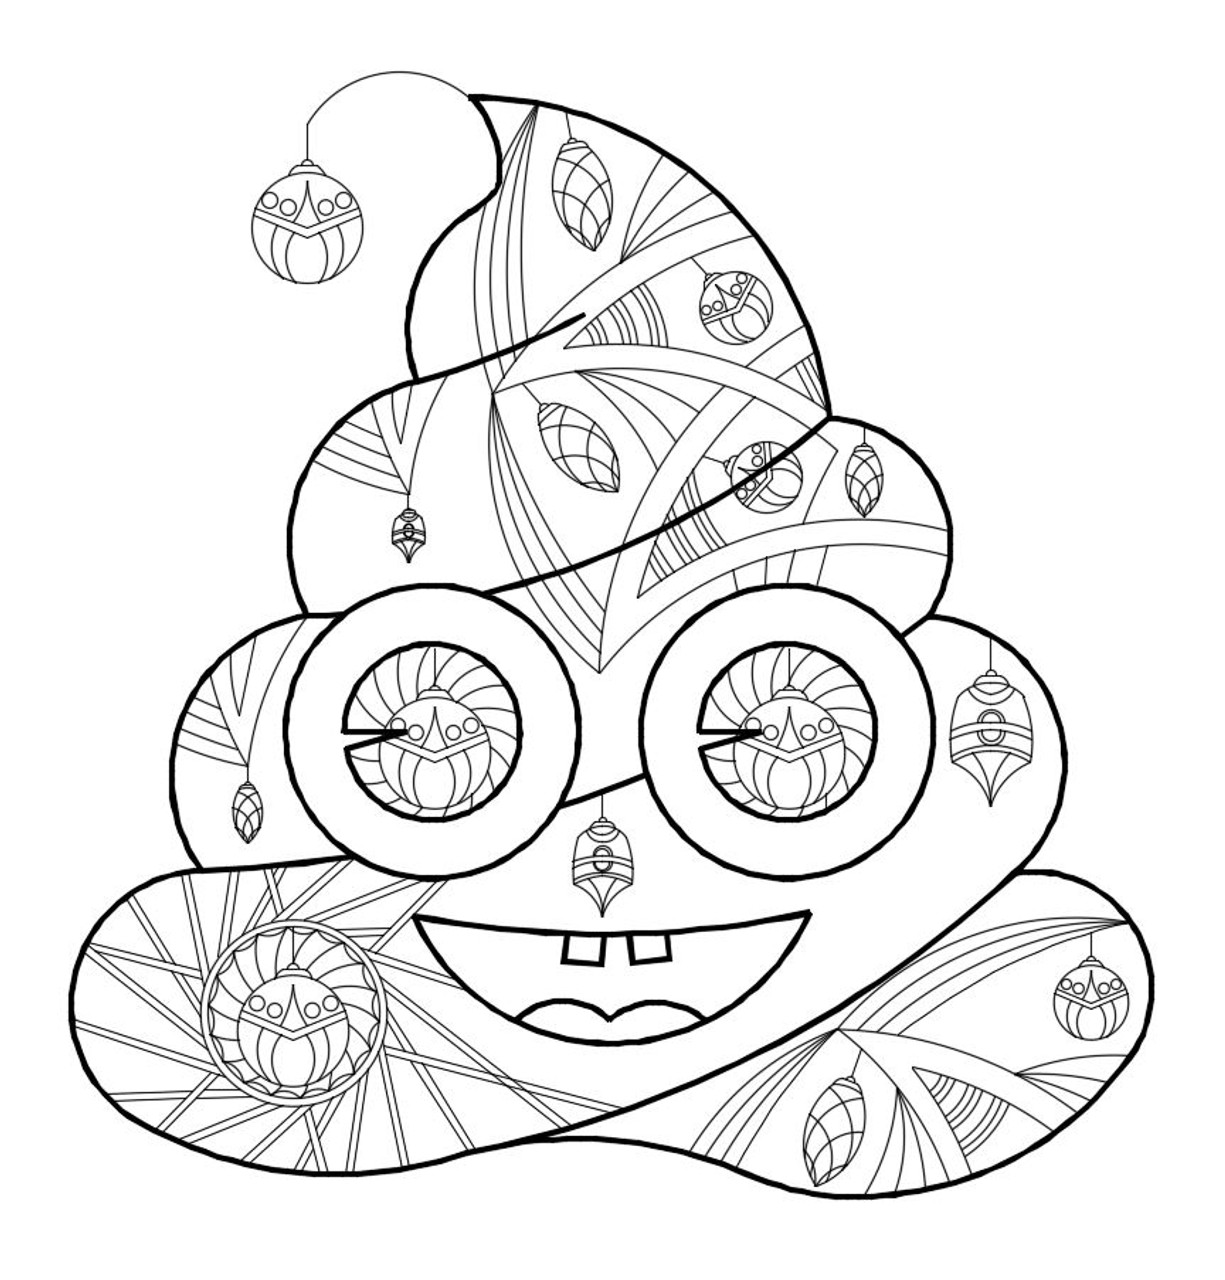 picture about Emoji Coloring Pages Printable titled Printable Poop Emoji Coloring -Little one - Xmas, Xmas coloring webpages, Poop Emoji coloring